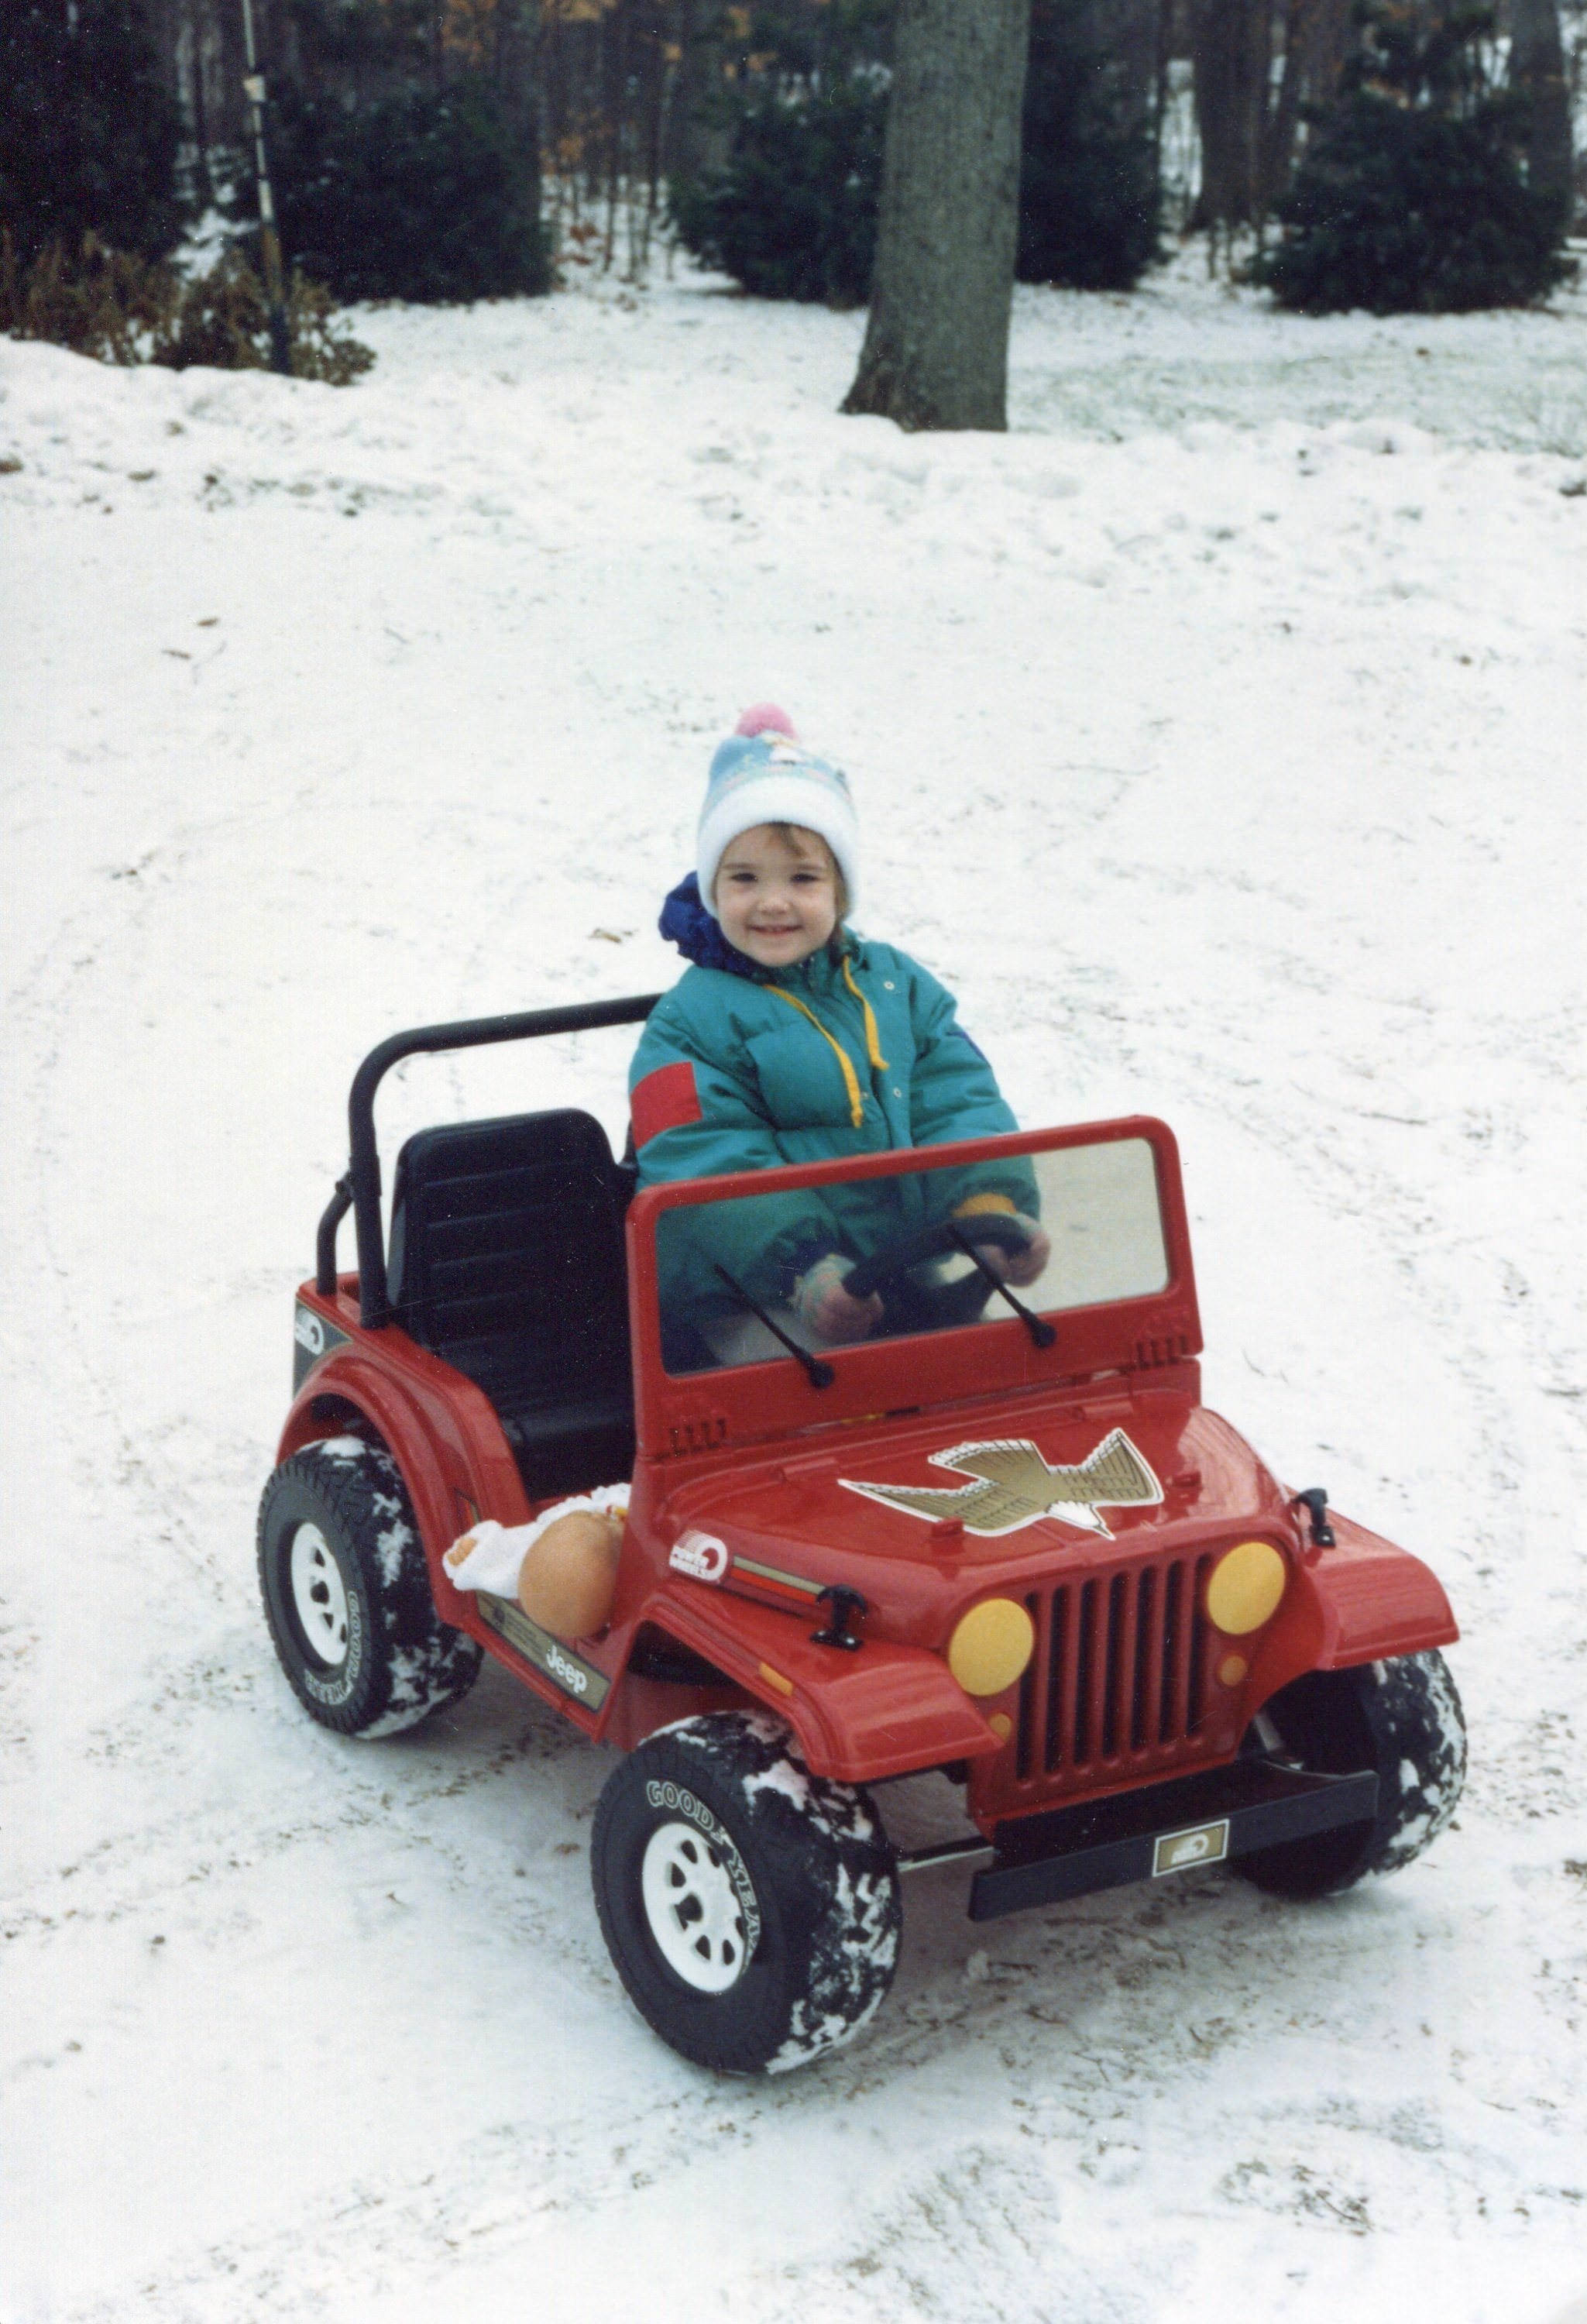 power wheels, snow, winter, Indiana, Heather Byrne, Red Jeep, Snow clothes, 90's child, Cold day